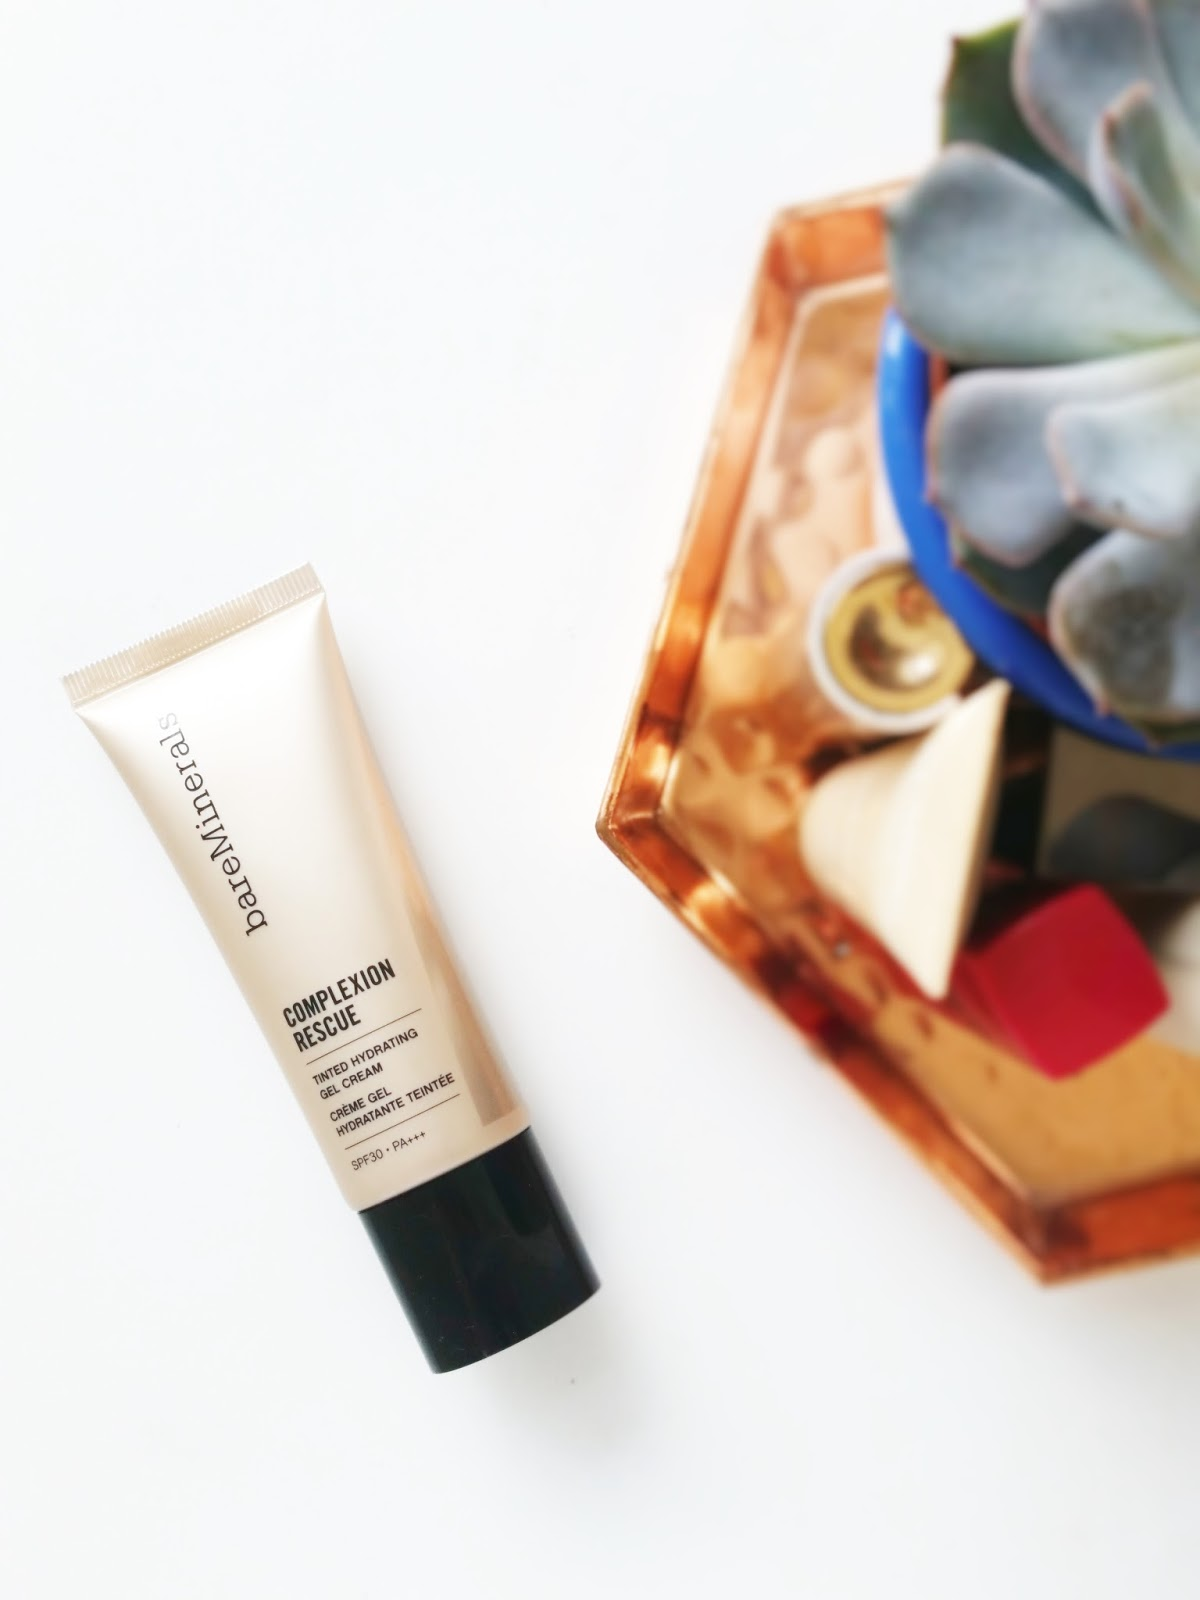 BareMinerals' Complexion Rescue Tinted Hydrating Gel Cream Review